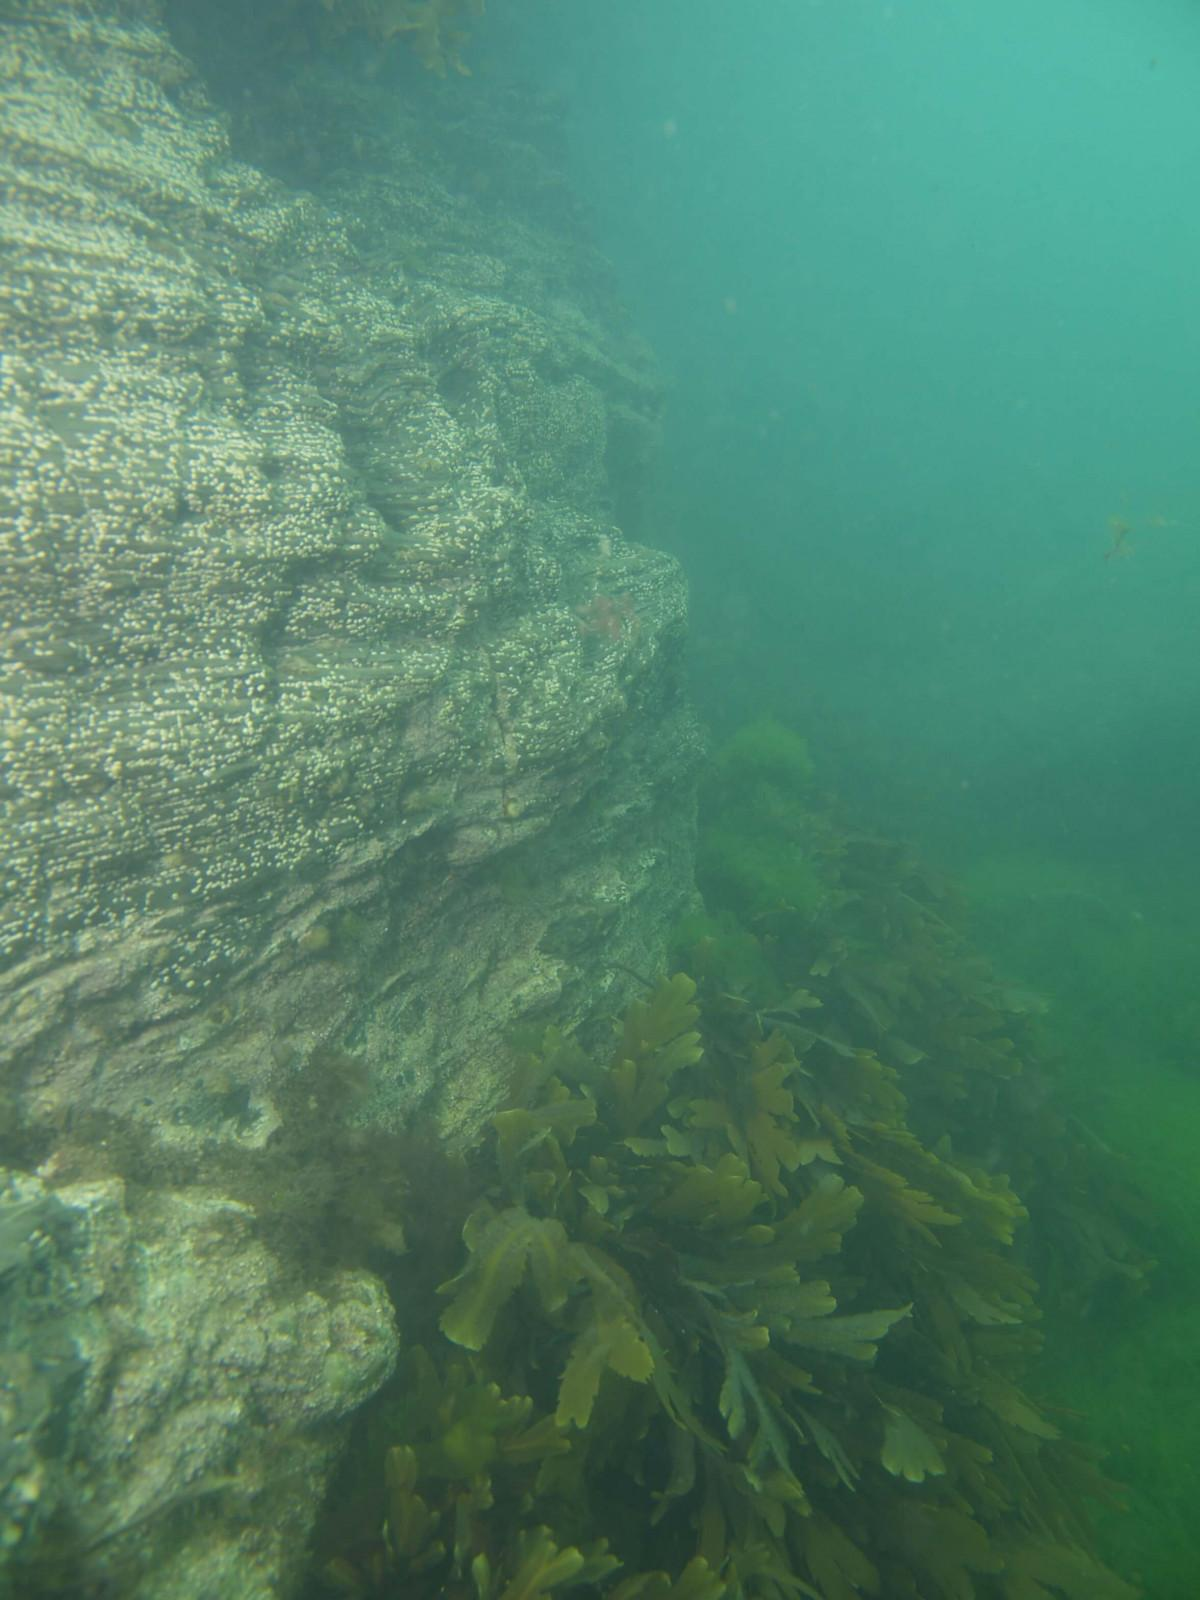 Images from Dive at Porth Dafarch, west coast of Anglesey in North Wales (5)